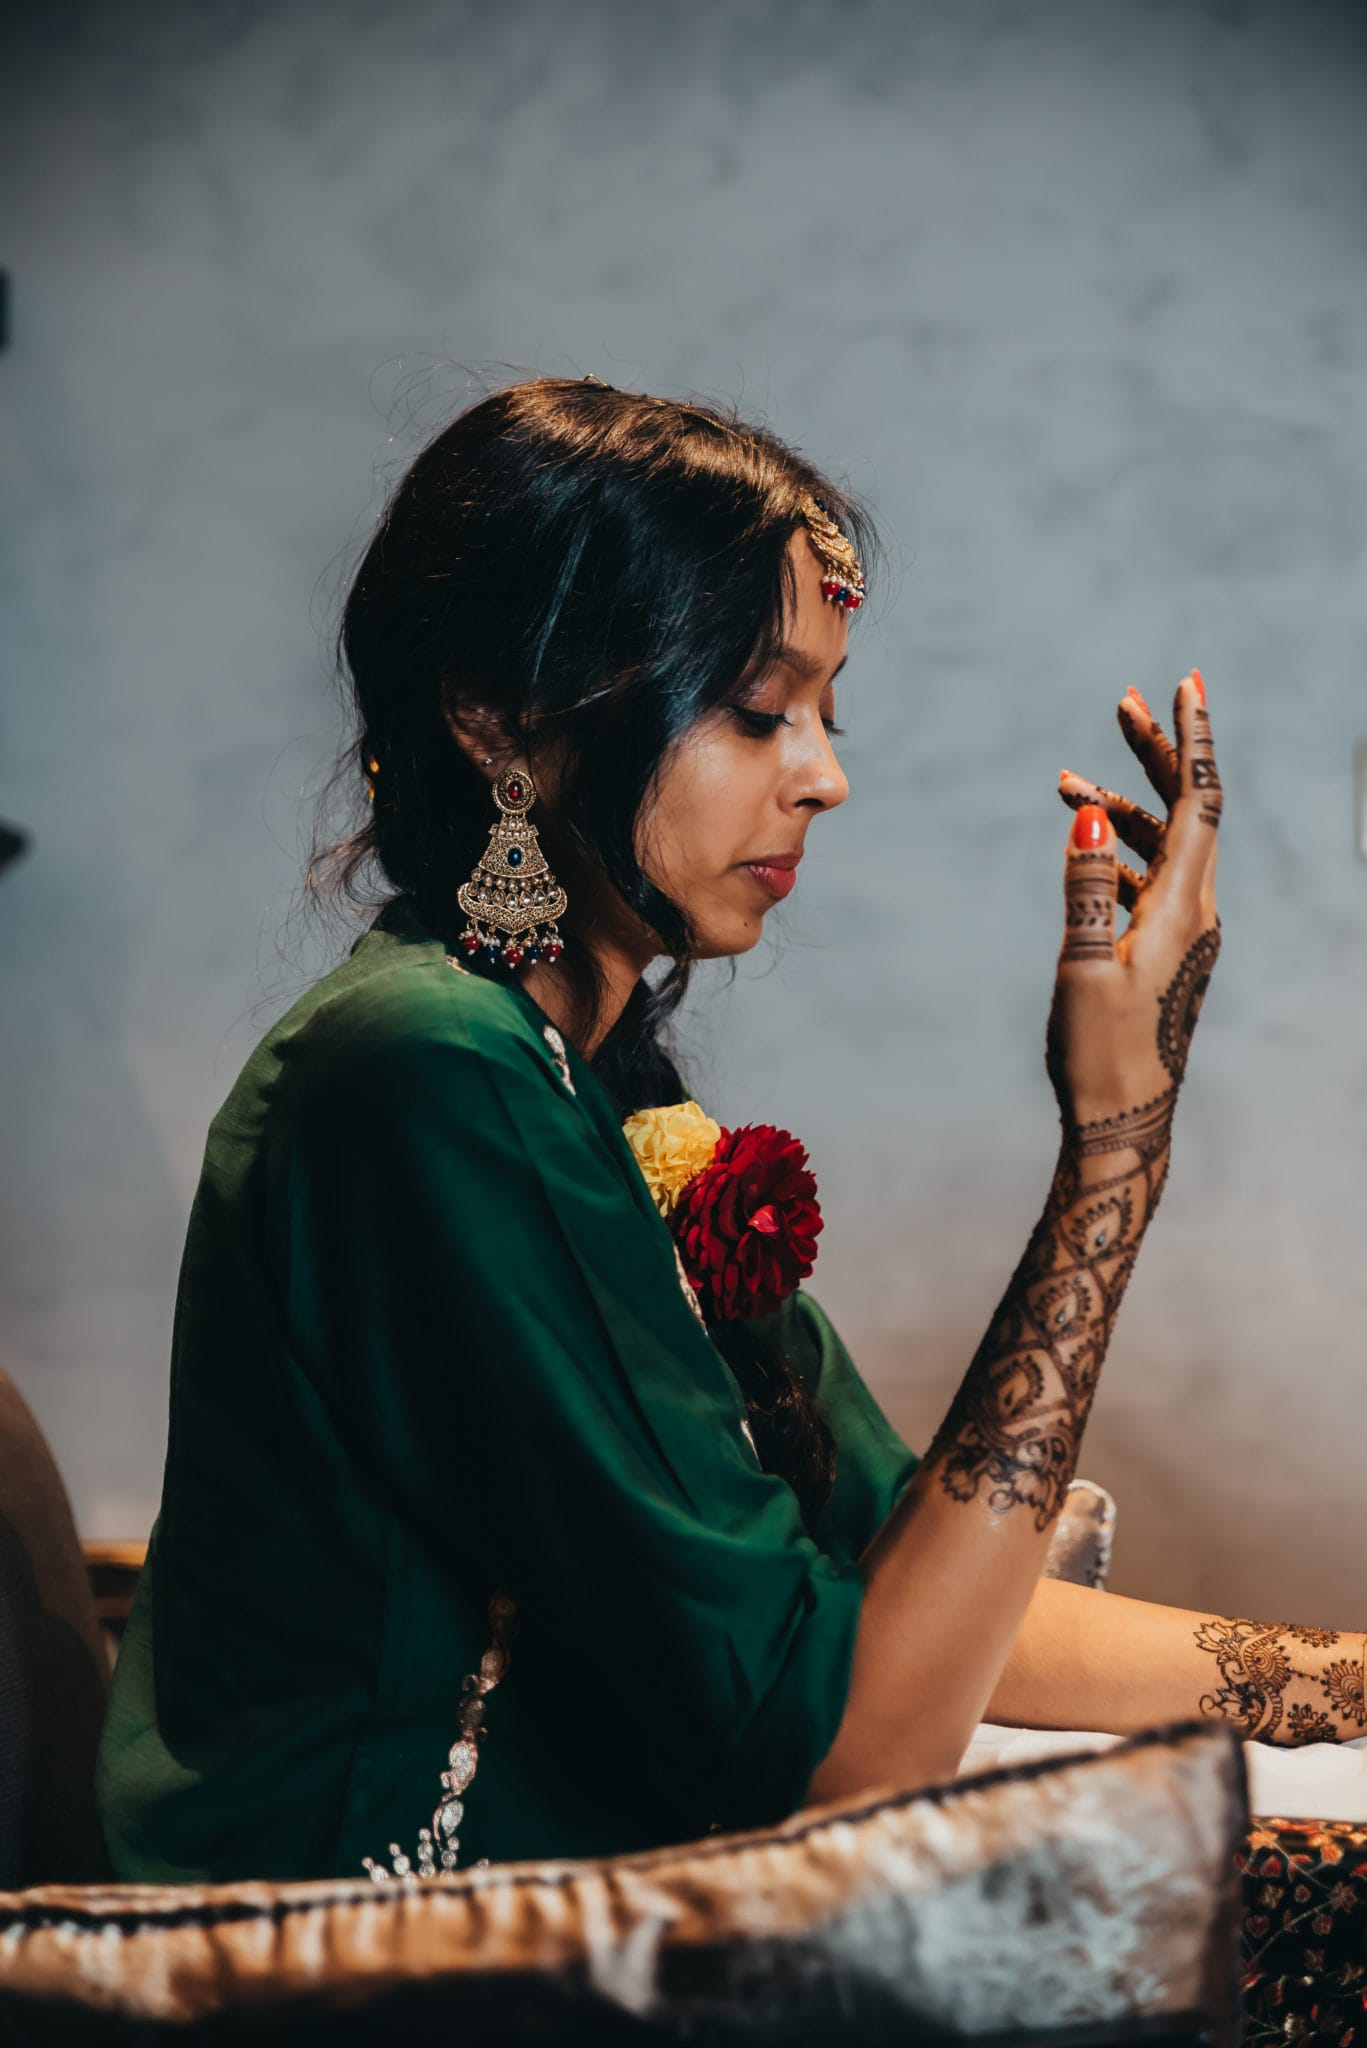 Mehndi ceremony in an Indian wedding ceremony